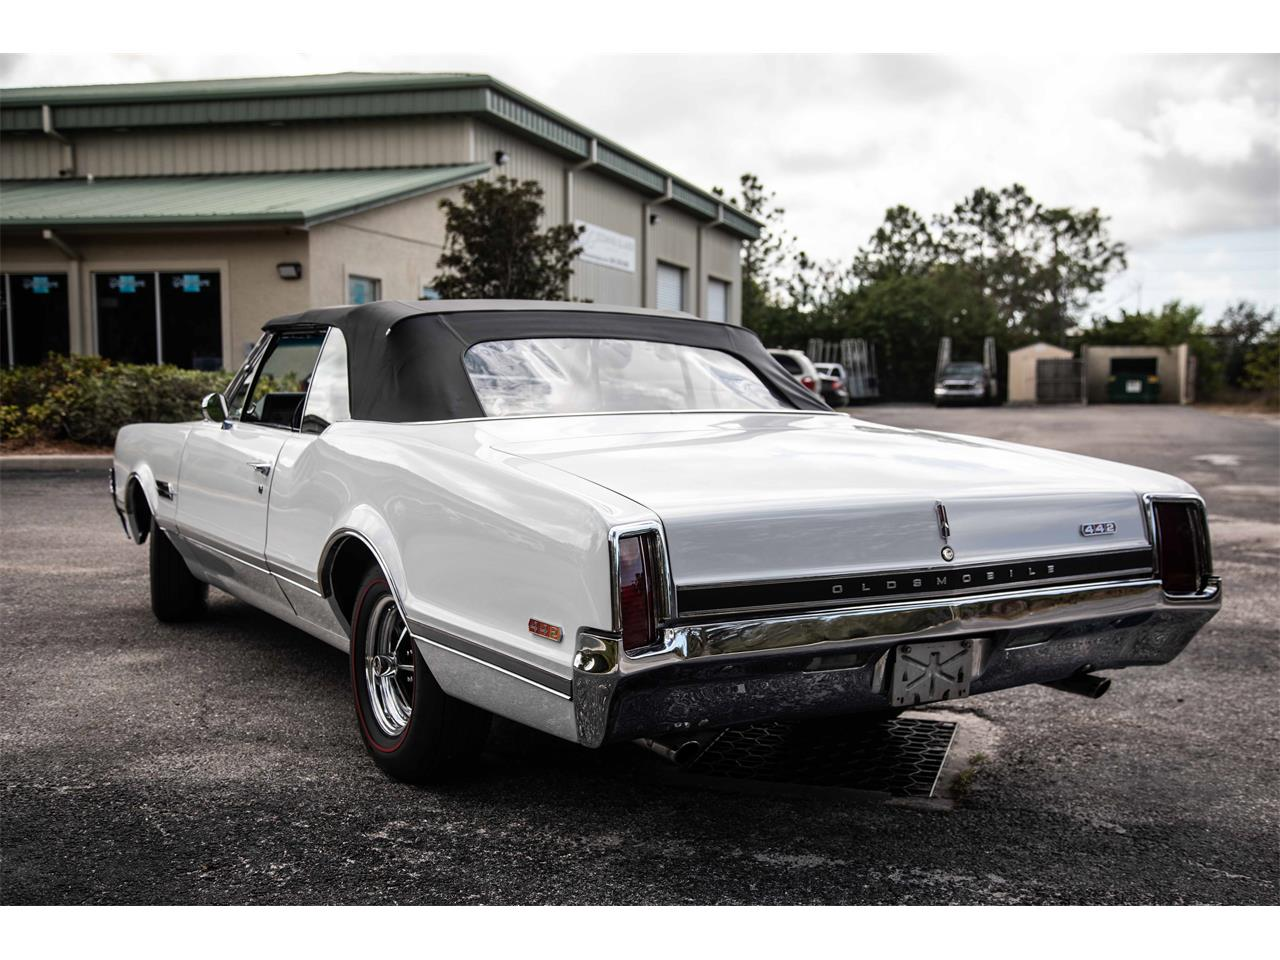 Large Picture of Classic '66 442 located in Florida - $59,900.00 Offered by Exquisite Auto - PIES